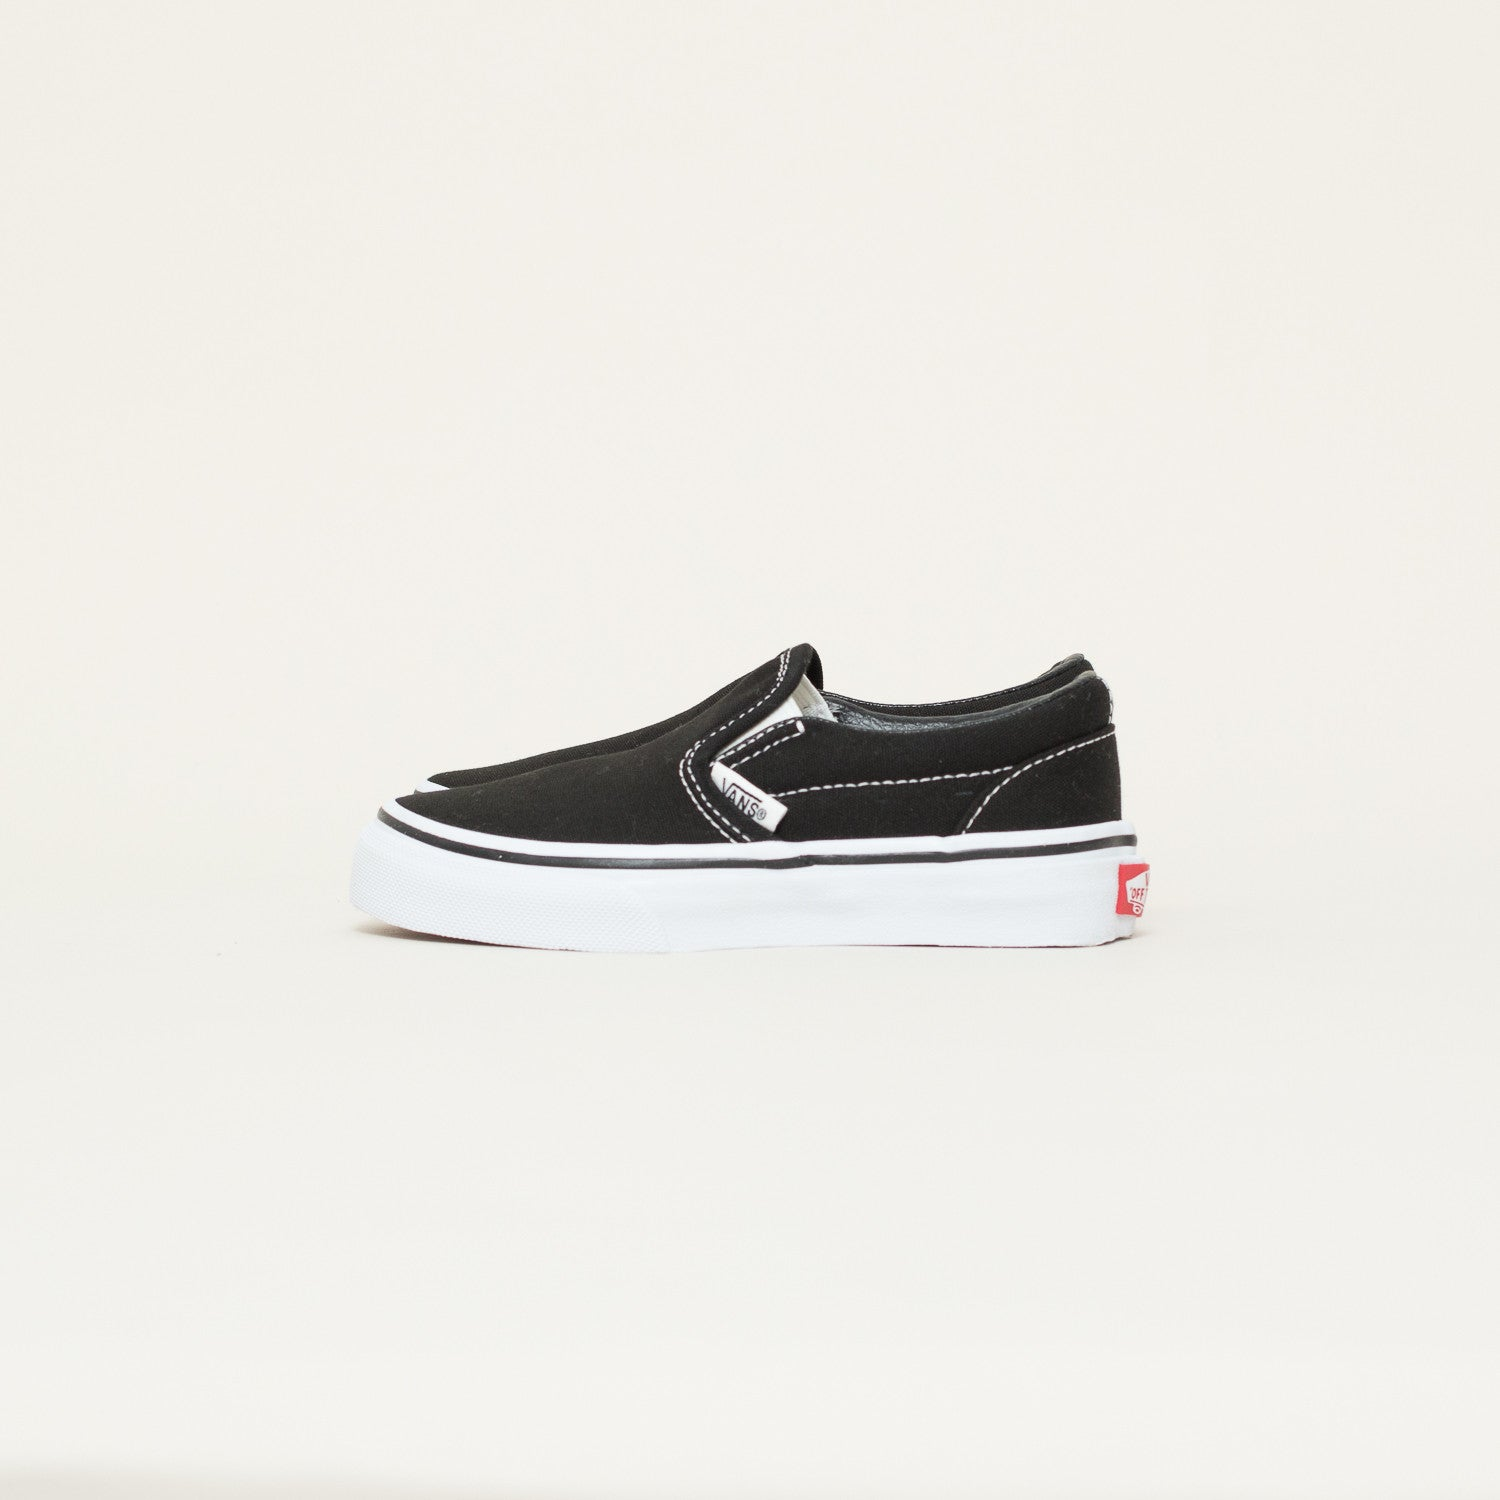 Kids slip-on - black - KID - 1